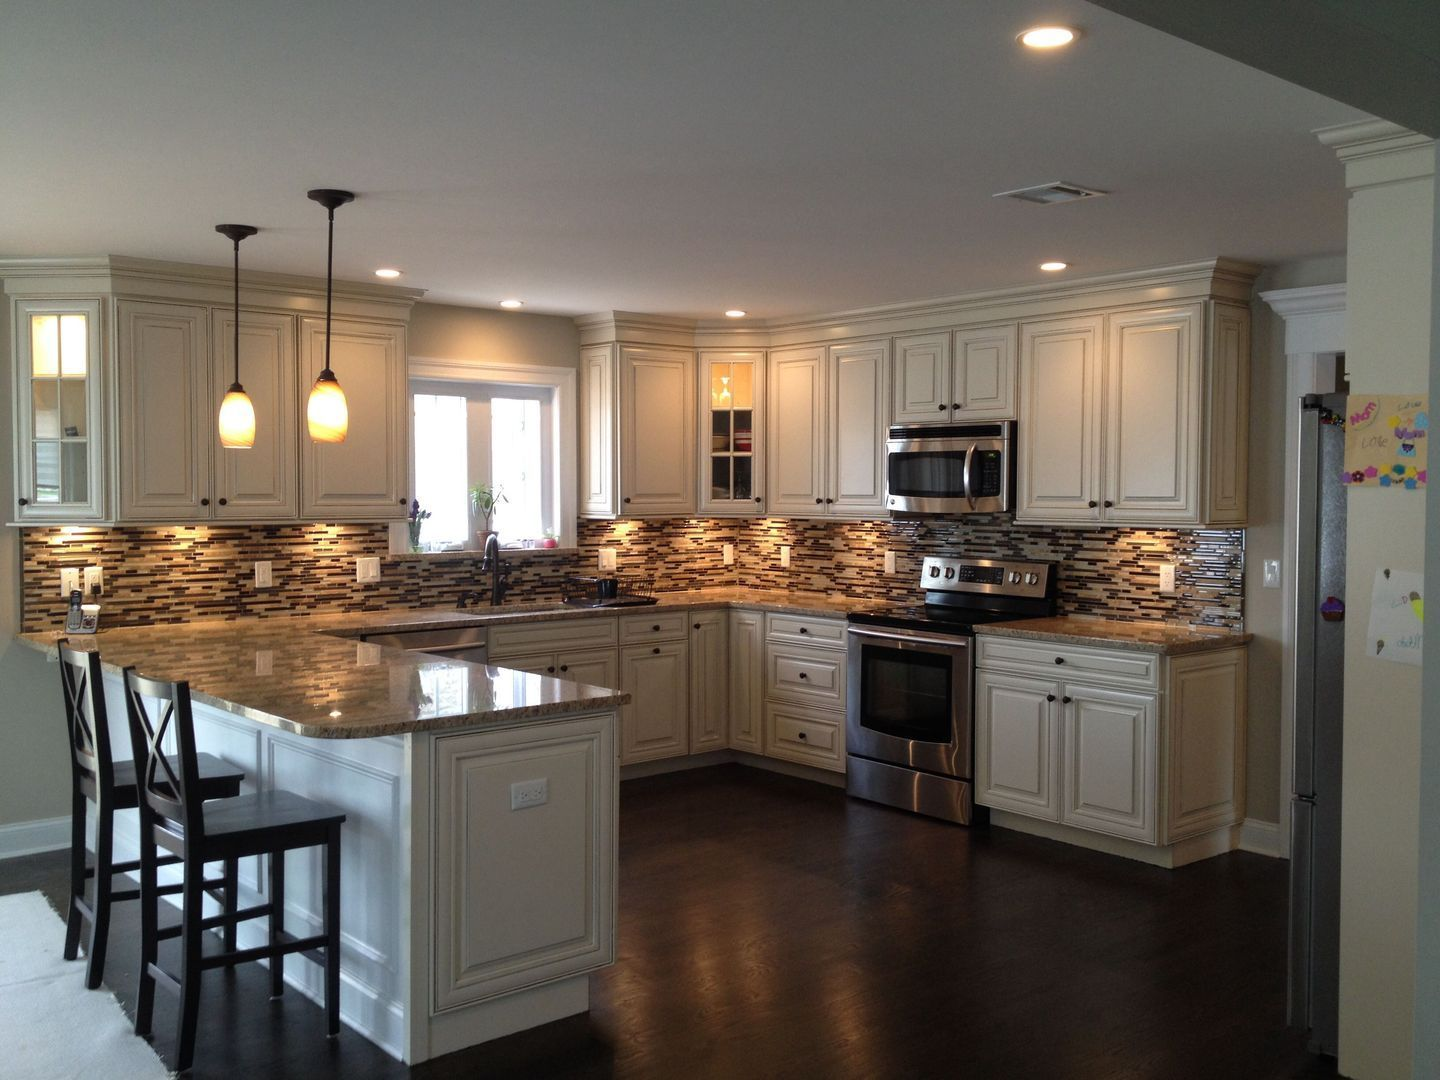 20 stunning kitchen peninsula designs with seating kitchen peninsula designs kitchenideas on g kitchen layout design id=33598